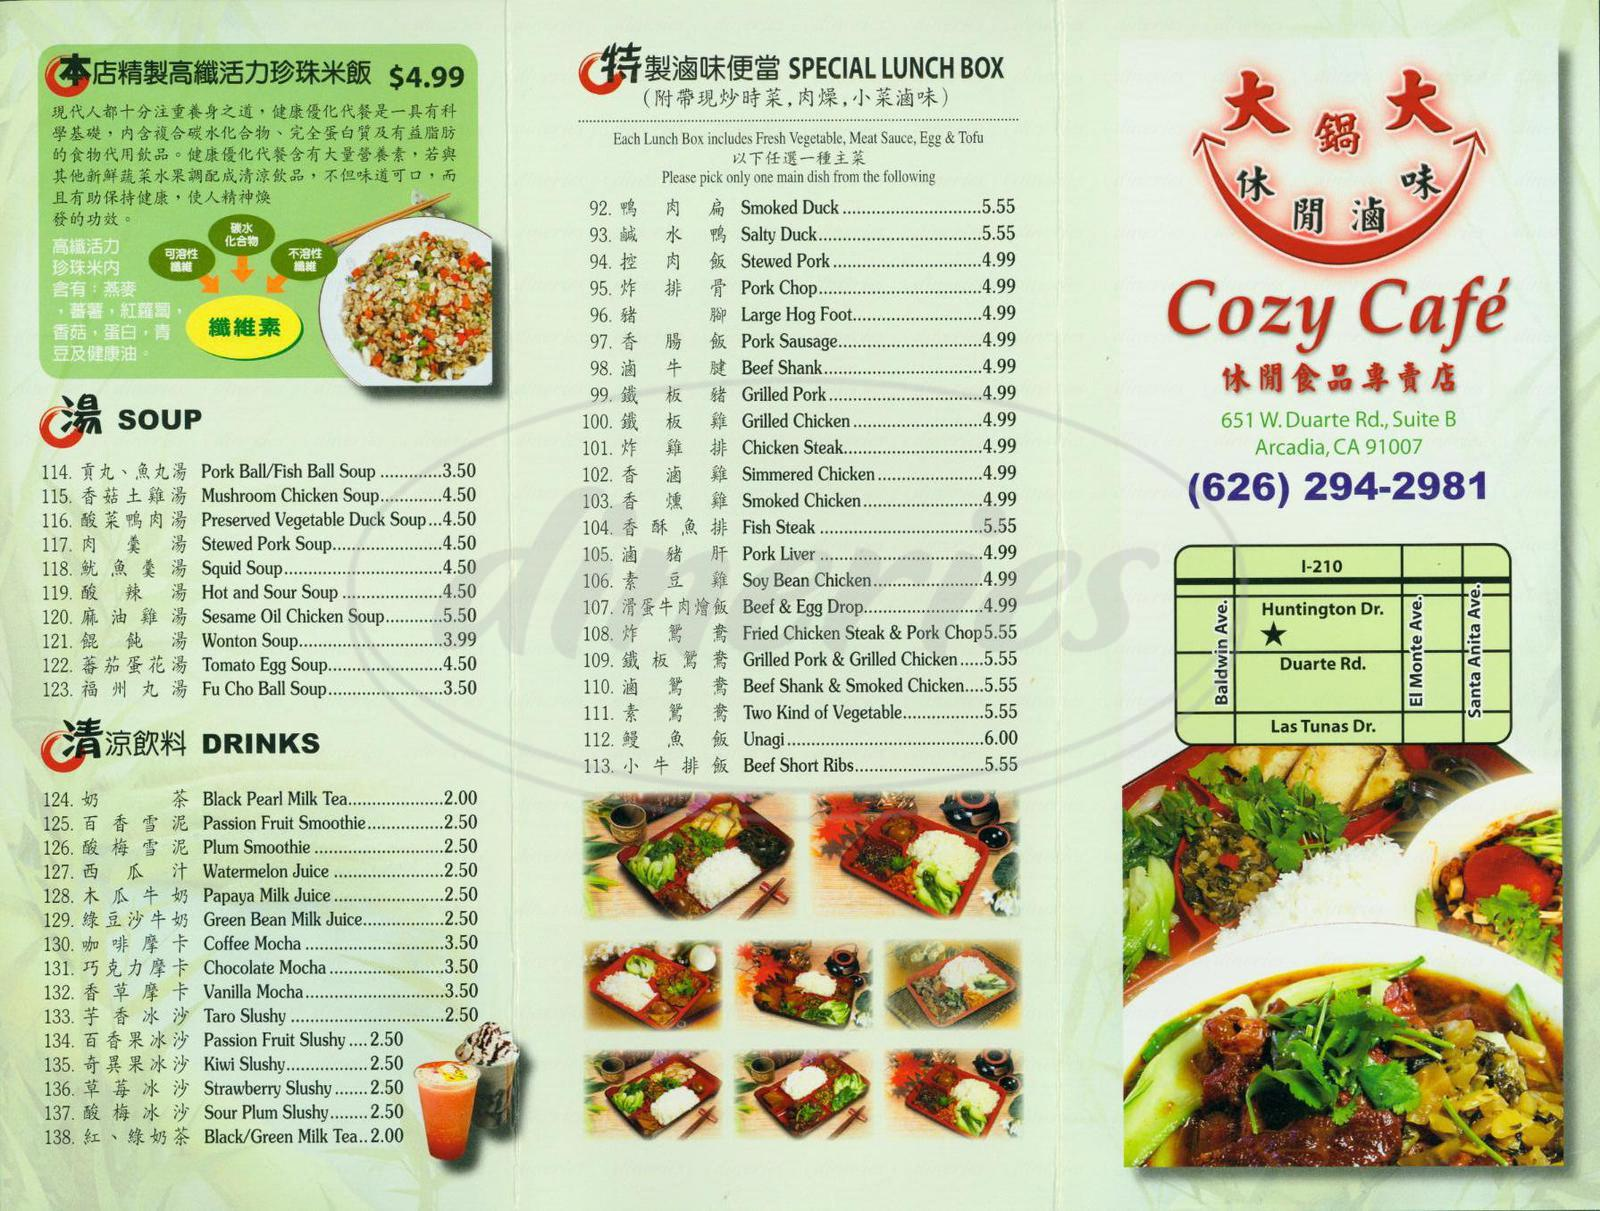 menu for Cozy Cafe